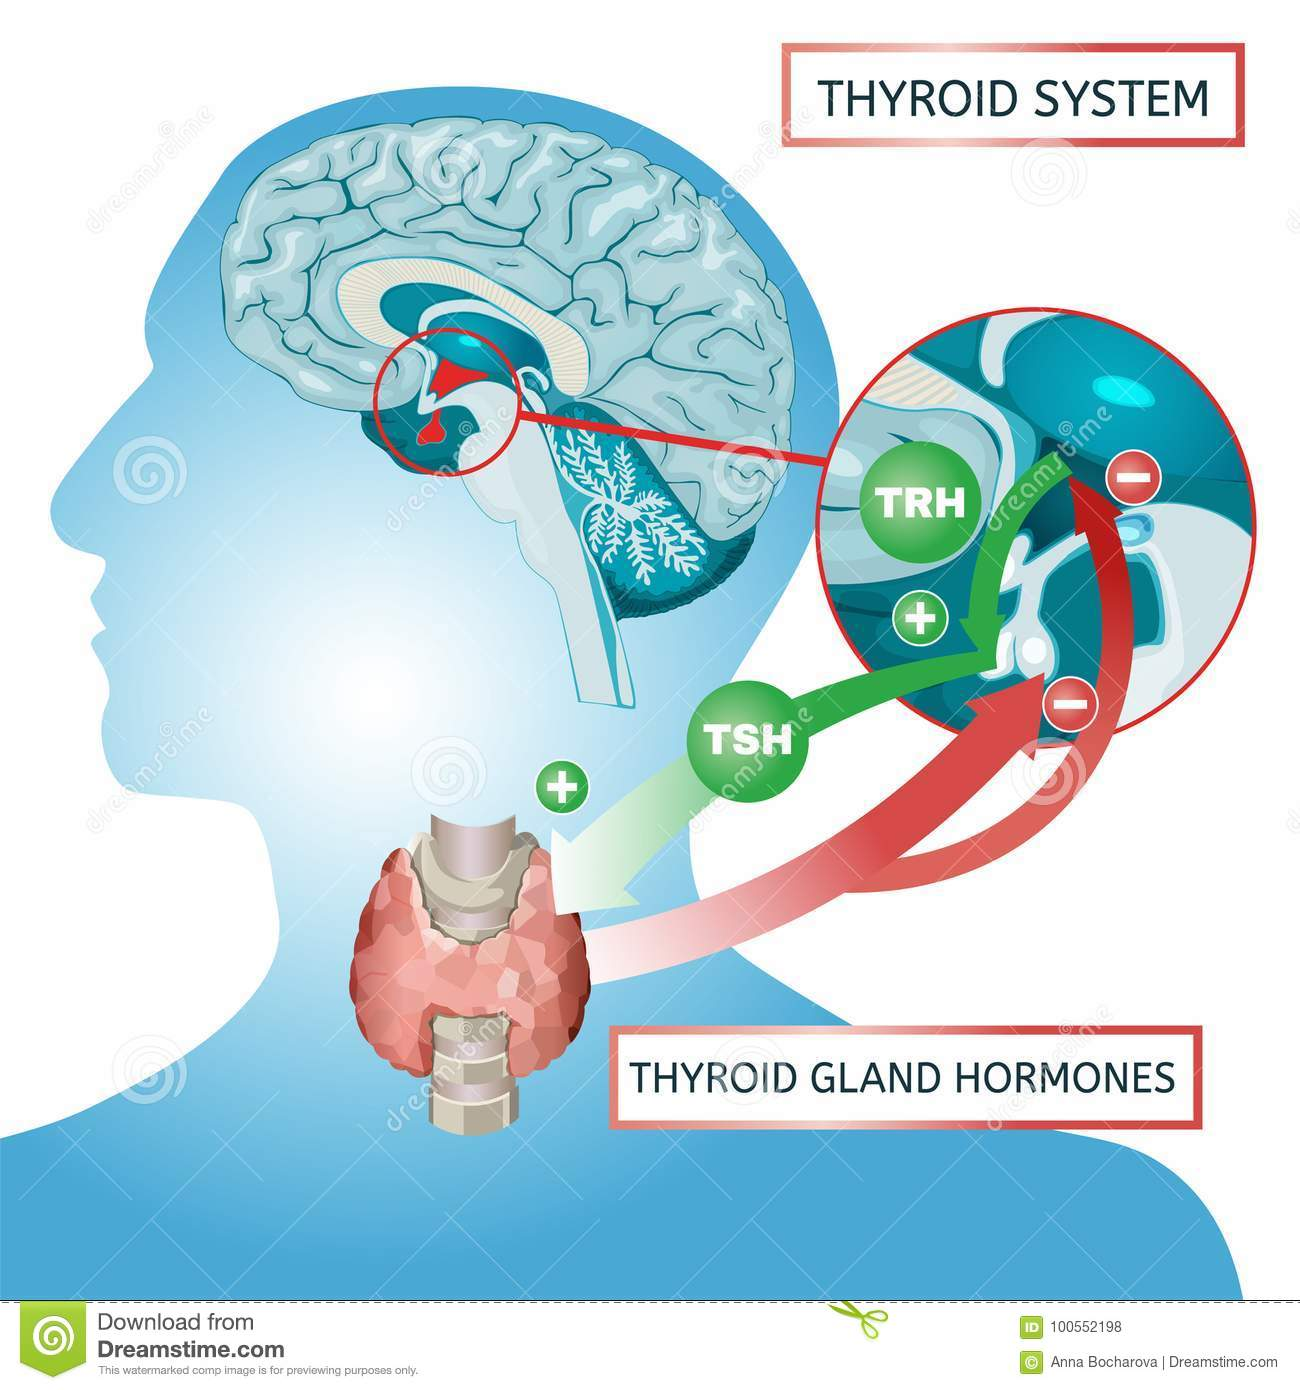 Thyroid System Poster stock vector. Illustration of endocrinology ...